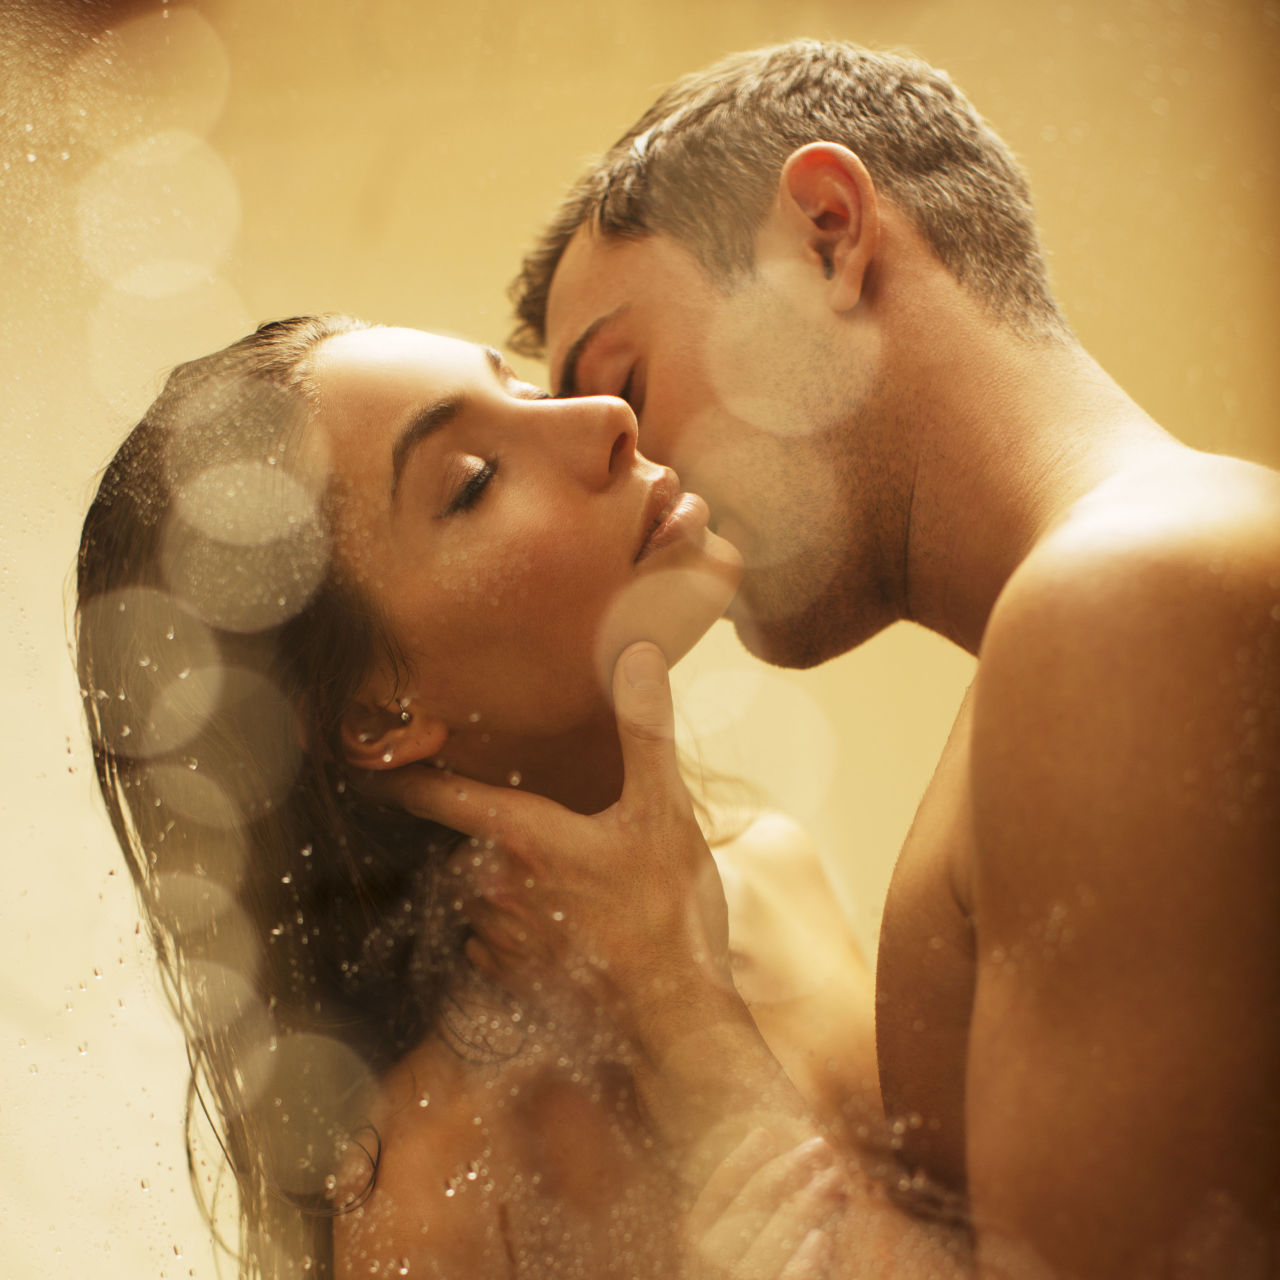 14 sexy foreplay moves best enjoyed in the shower – This will help you become a pro!